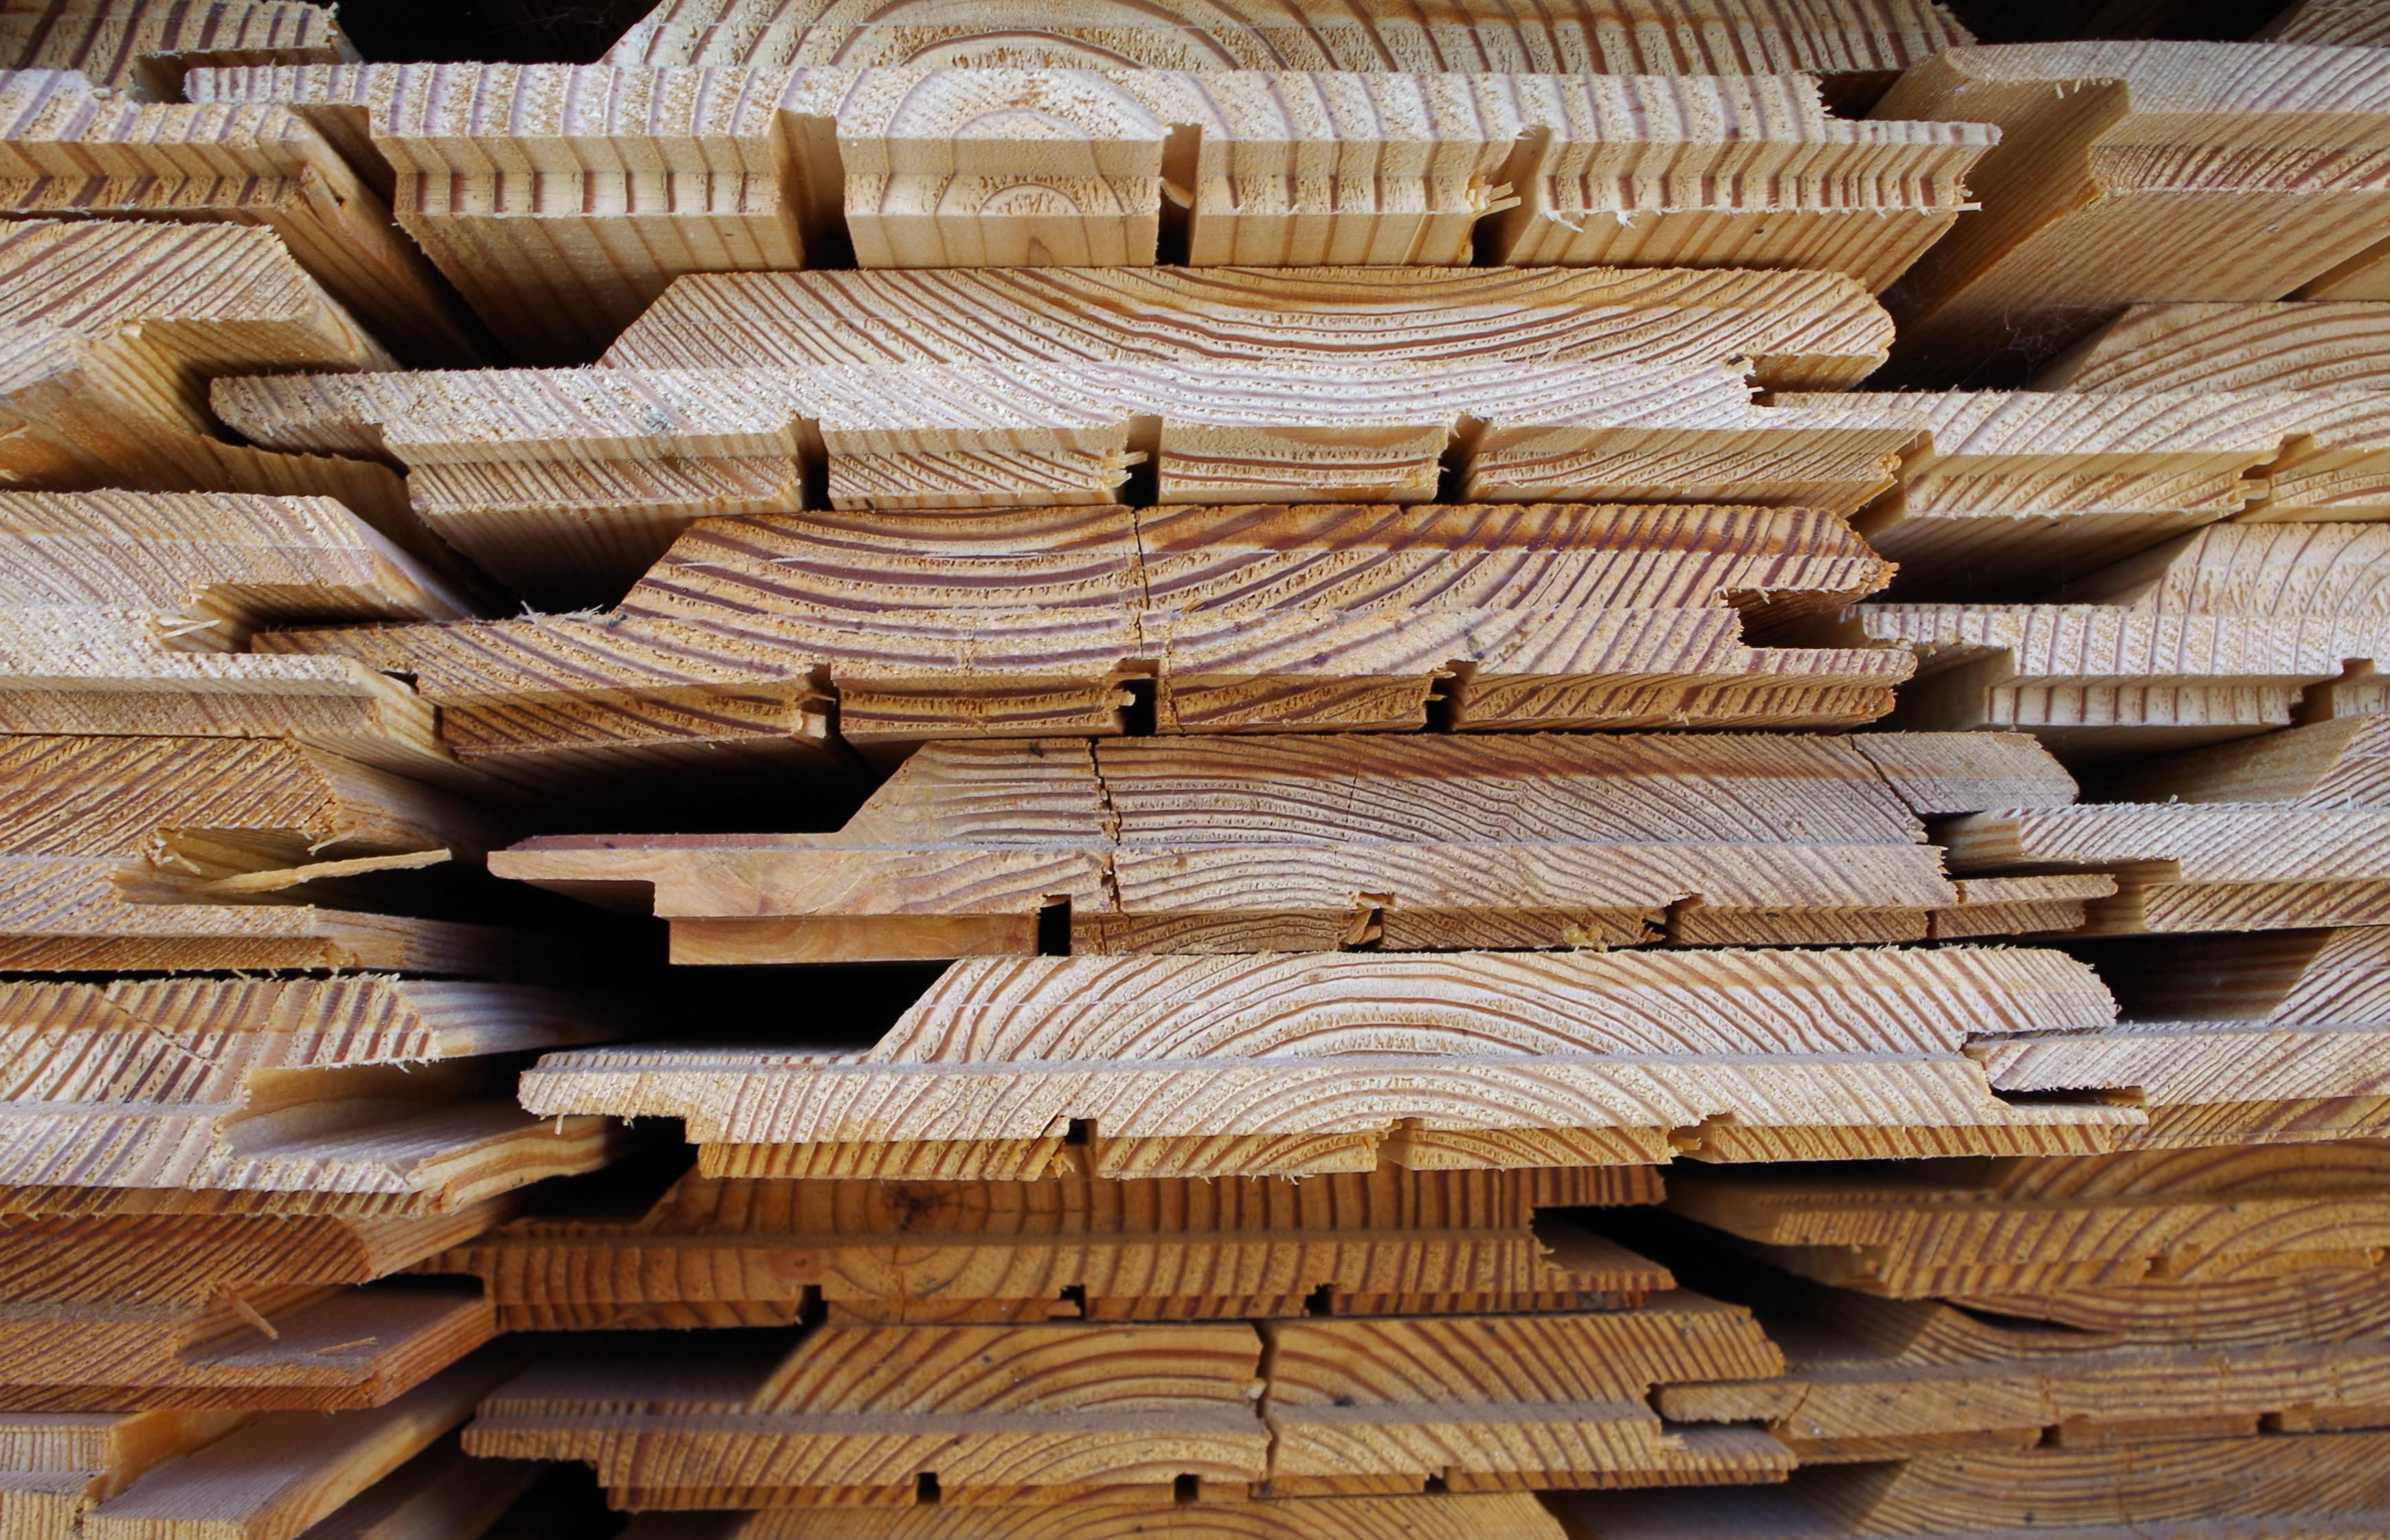 //www.teamwoodtimber.com/wp-content/uploads/2015/05/TW-92988-LARCH-21x132x4-FRENCH-1.jpg